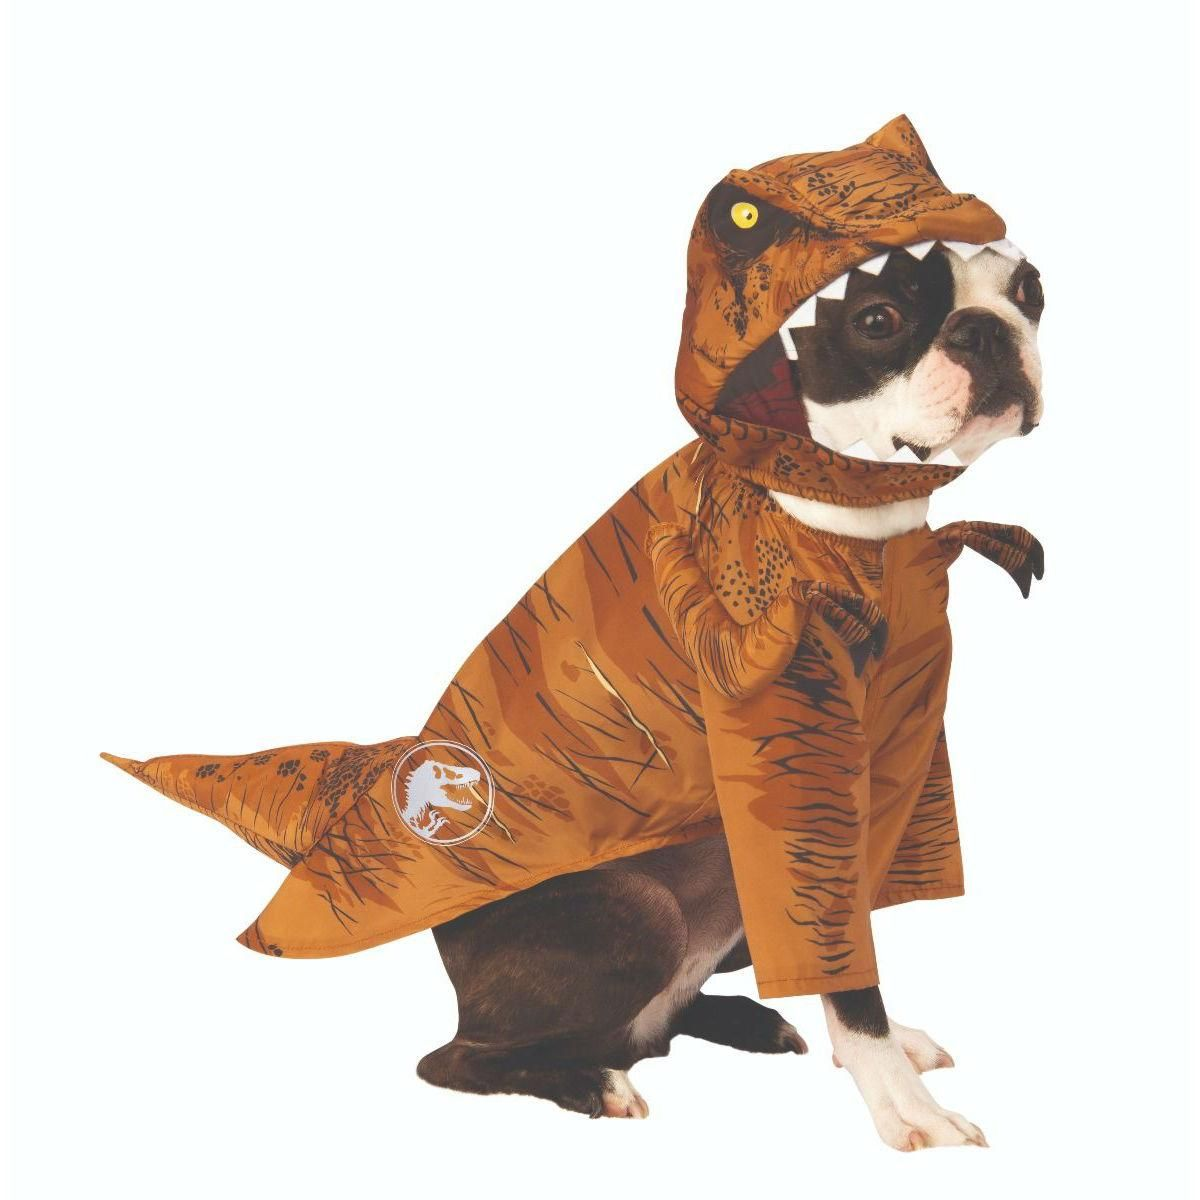 Jurassic World TRex Dog Costume by Rubies Dog costume